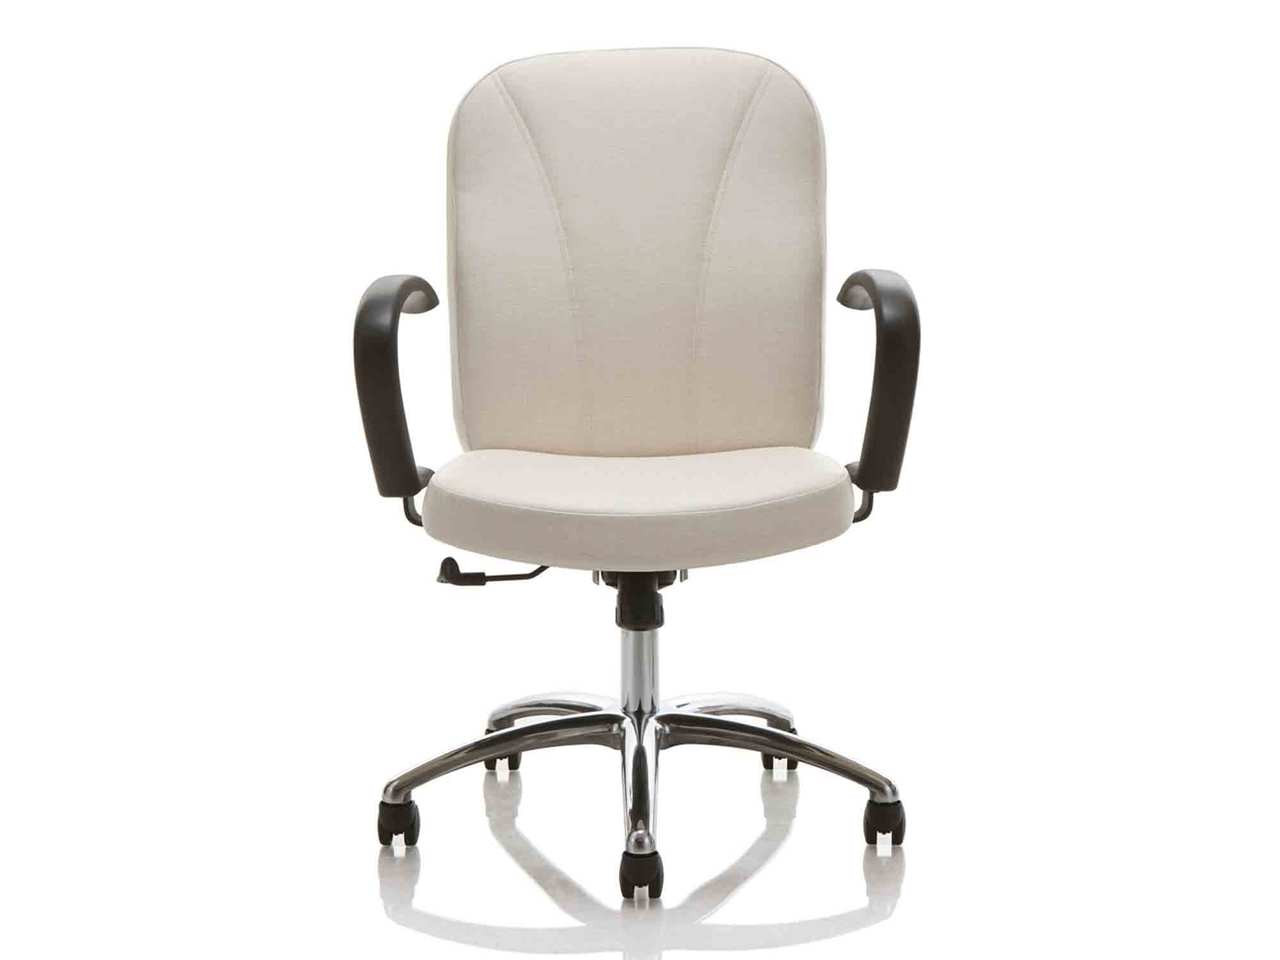 united chair medical stool salon for sale venus office furniture warehouse image 1 2